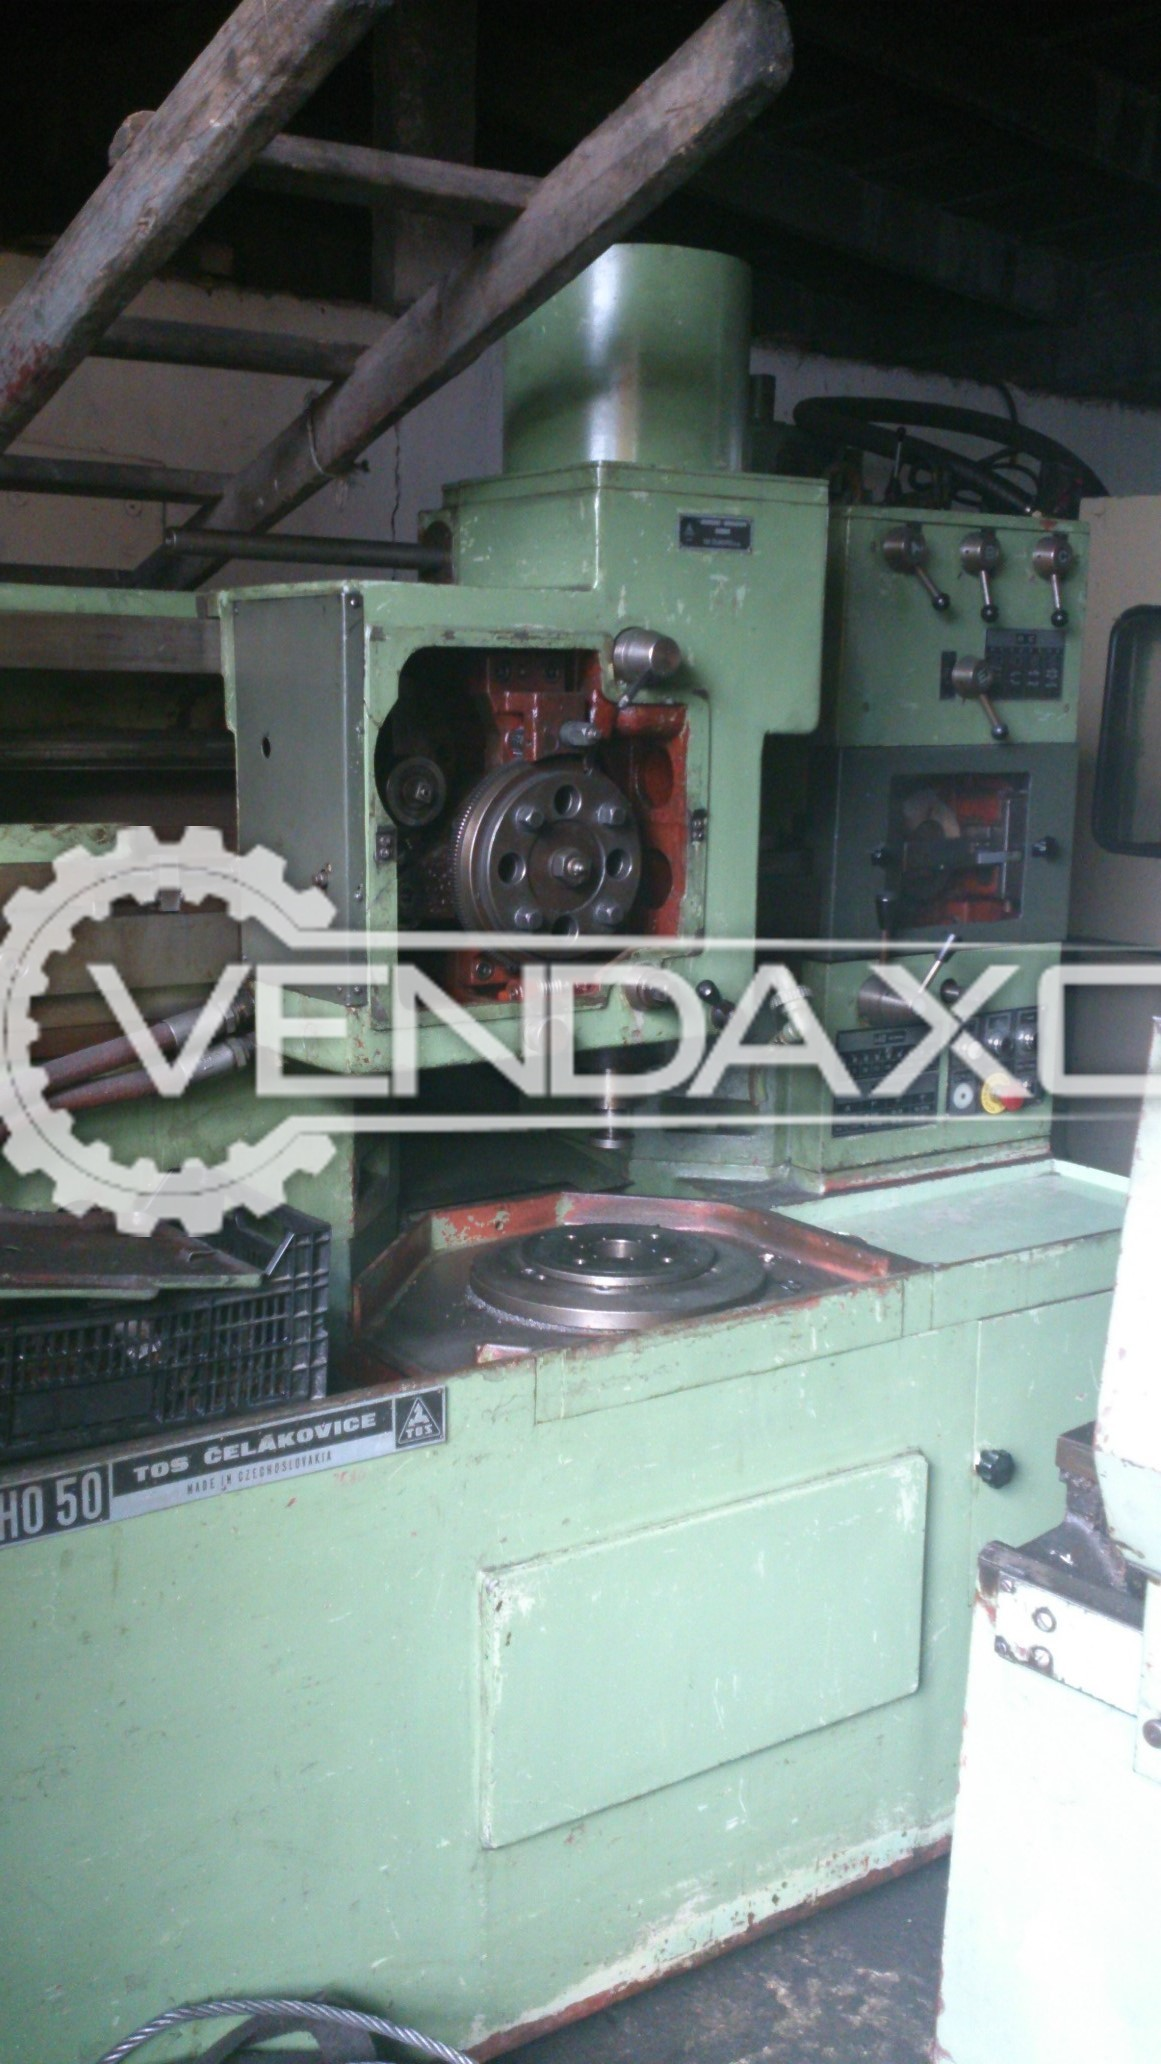 TOS OHO 50 Gear Shaping Machine - Max Wheel Diameter : 500 mm